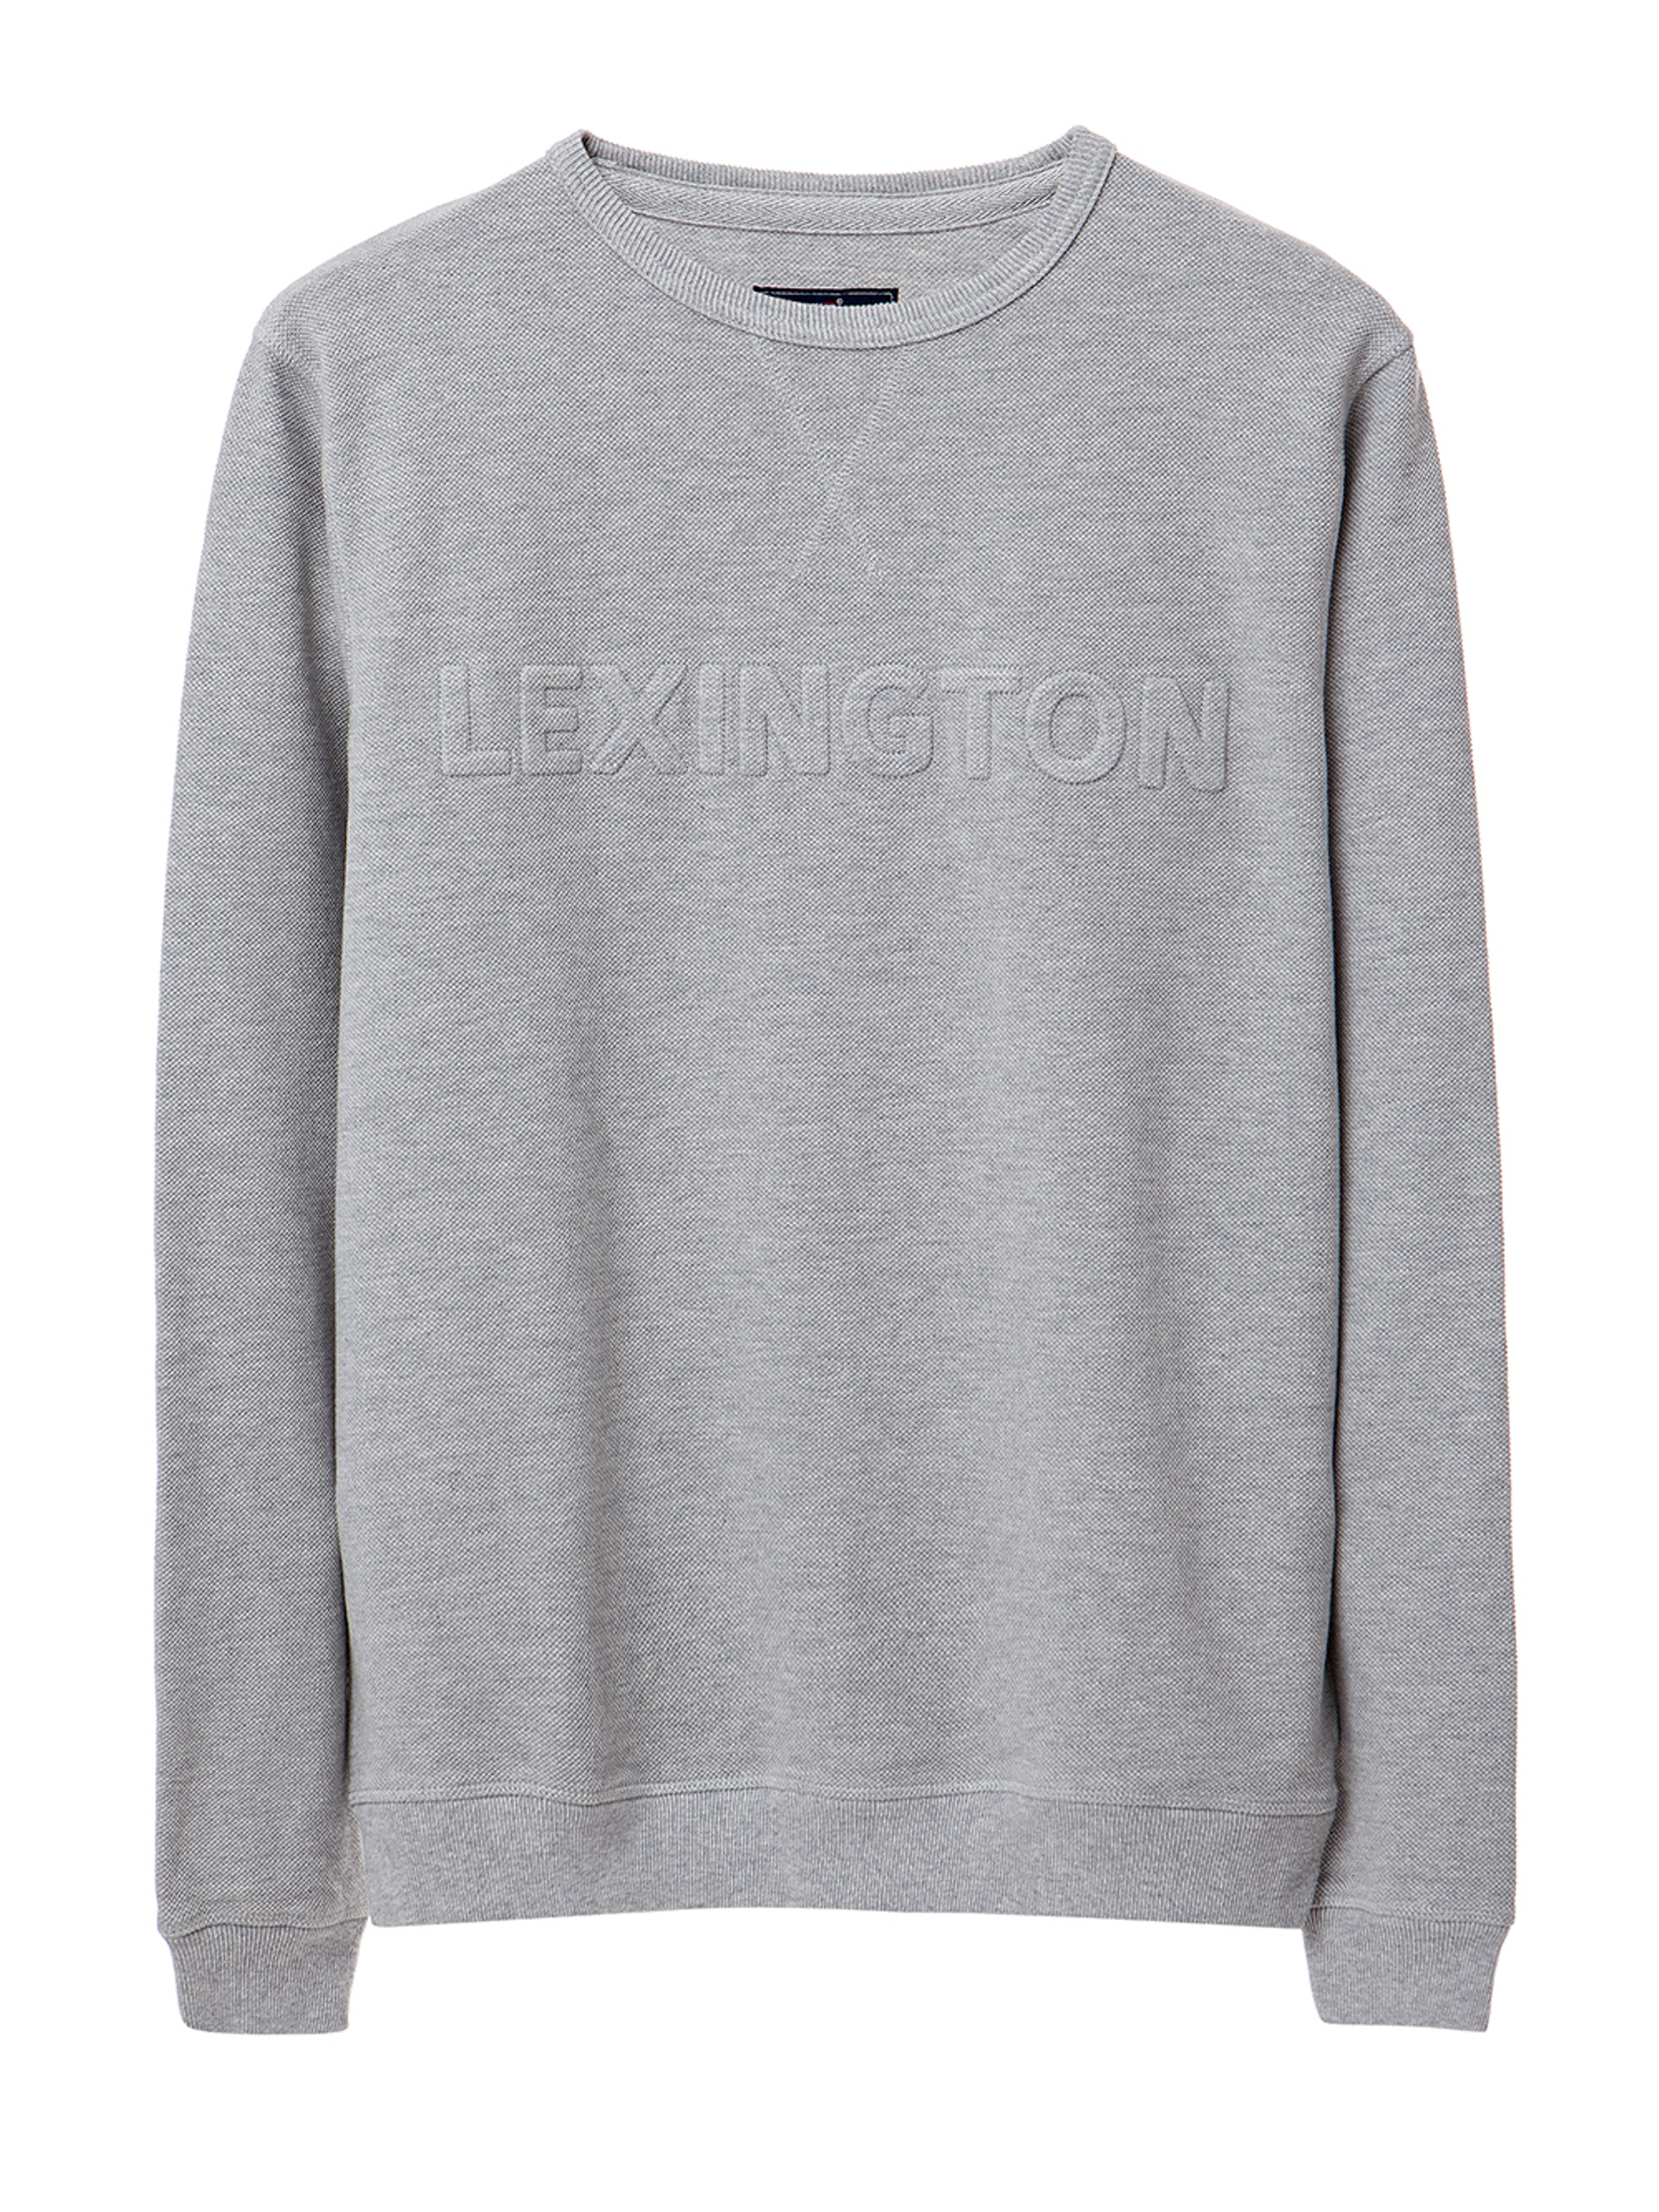 Shane Pique Sweatshirt, Light Gray- Coming soon!